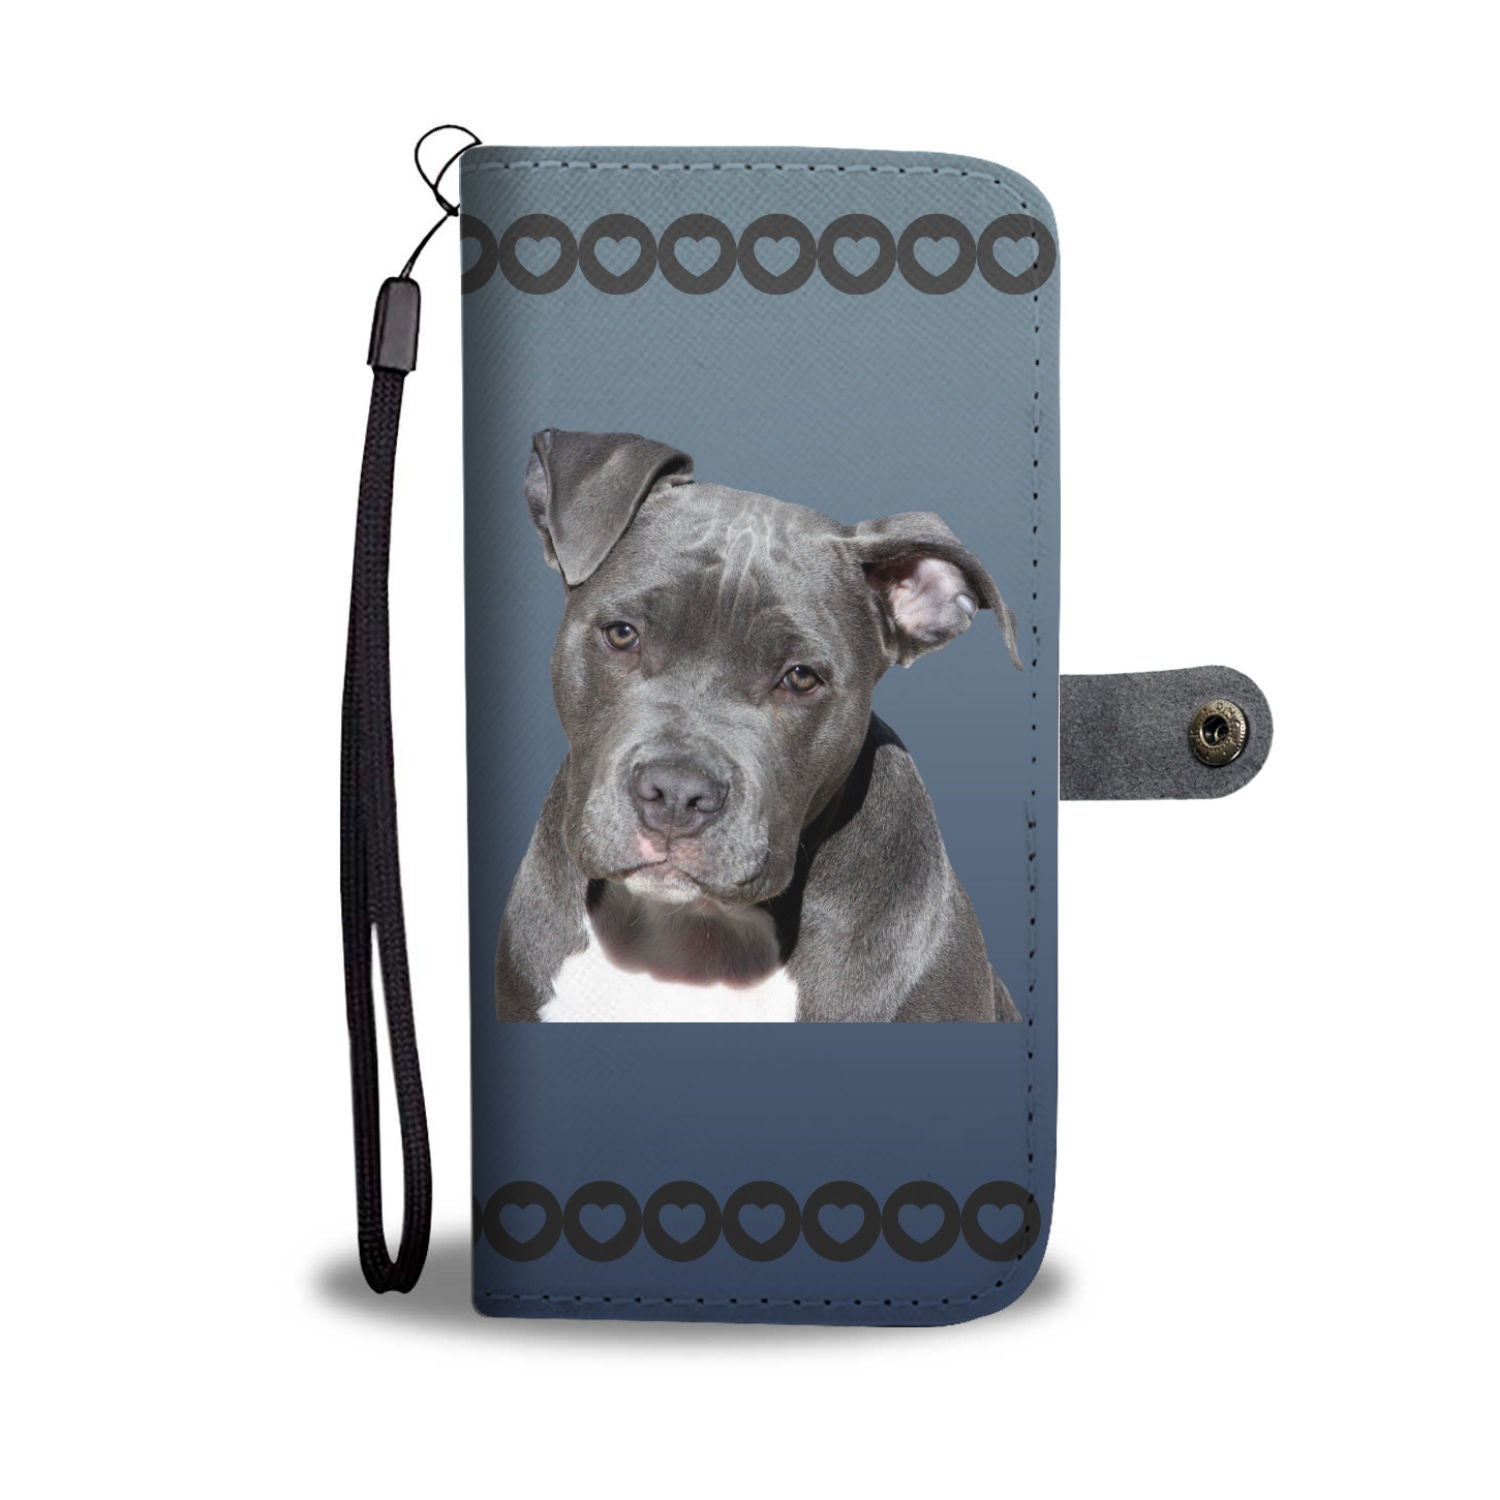 Staffordshire Bull Terrier Phone Case Wallet